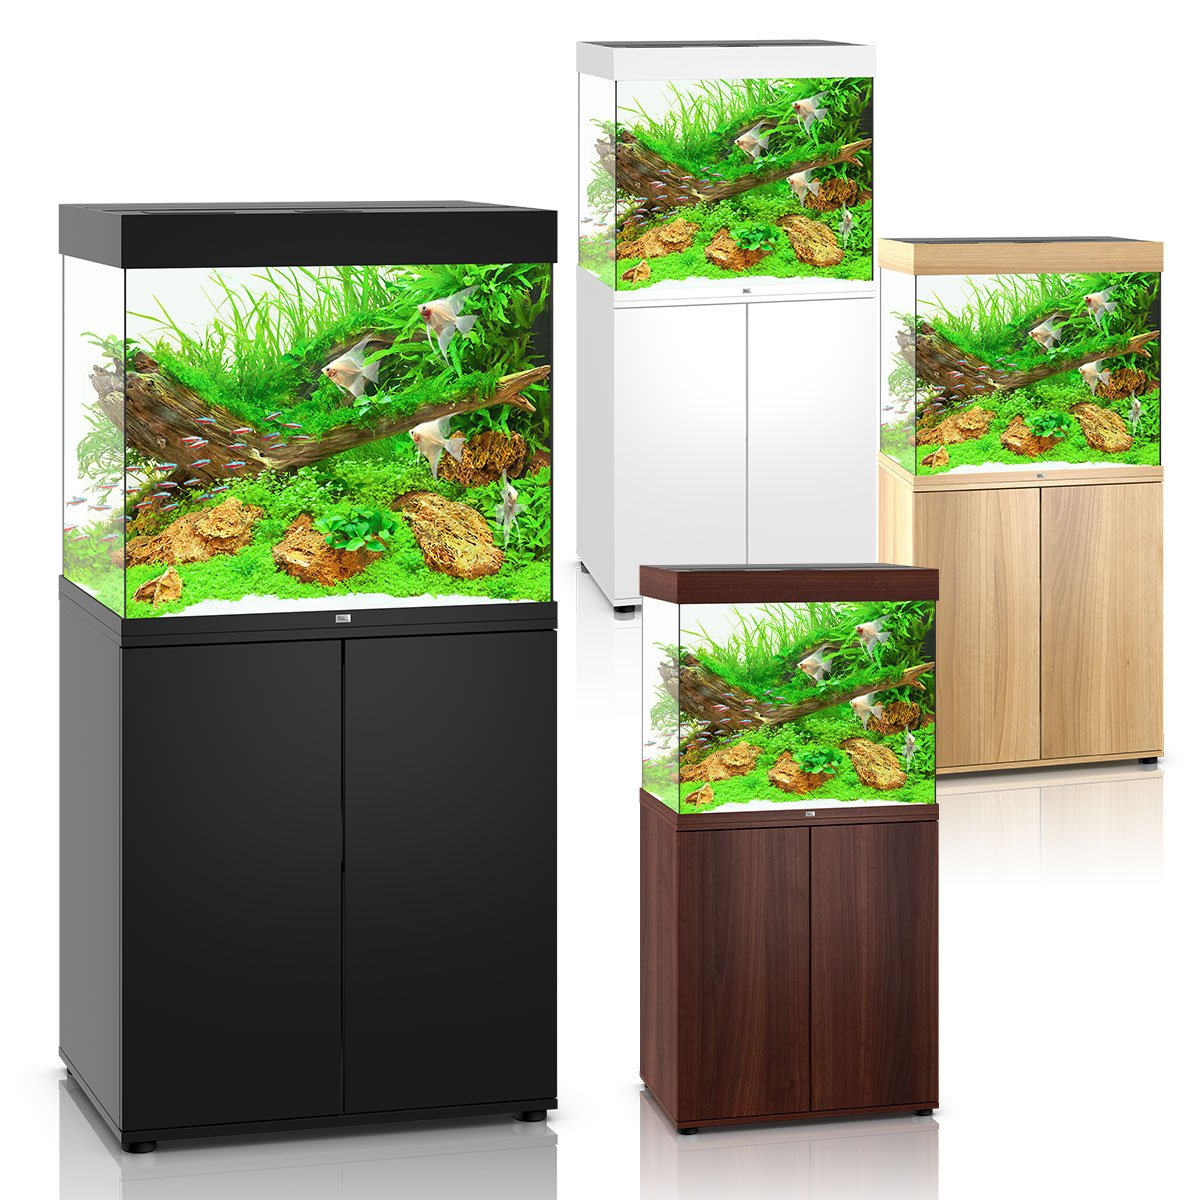 juwel lido 200 led komplett aquarium mit unterschrank sbx. Black Bedroom Furniture Sets. Home Design Ideas